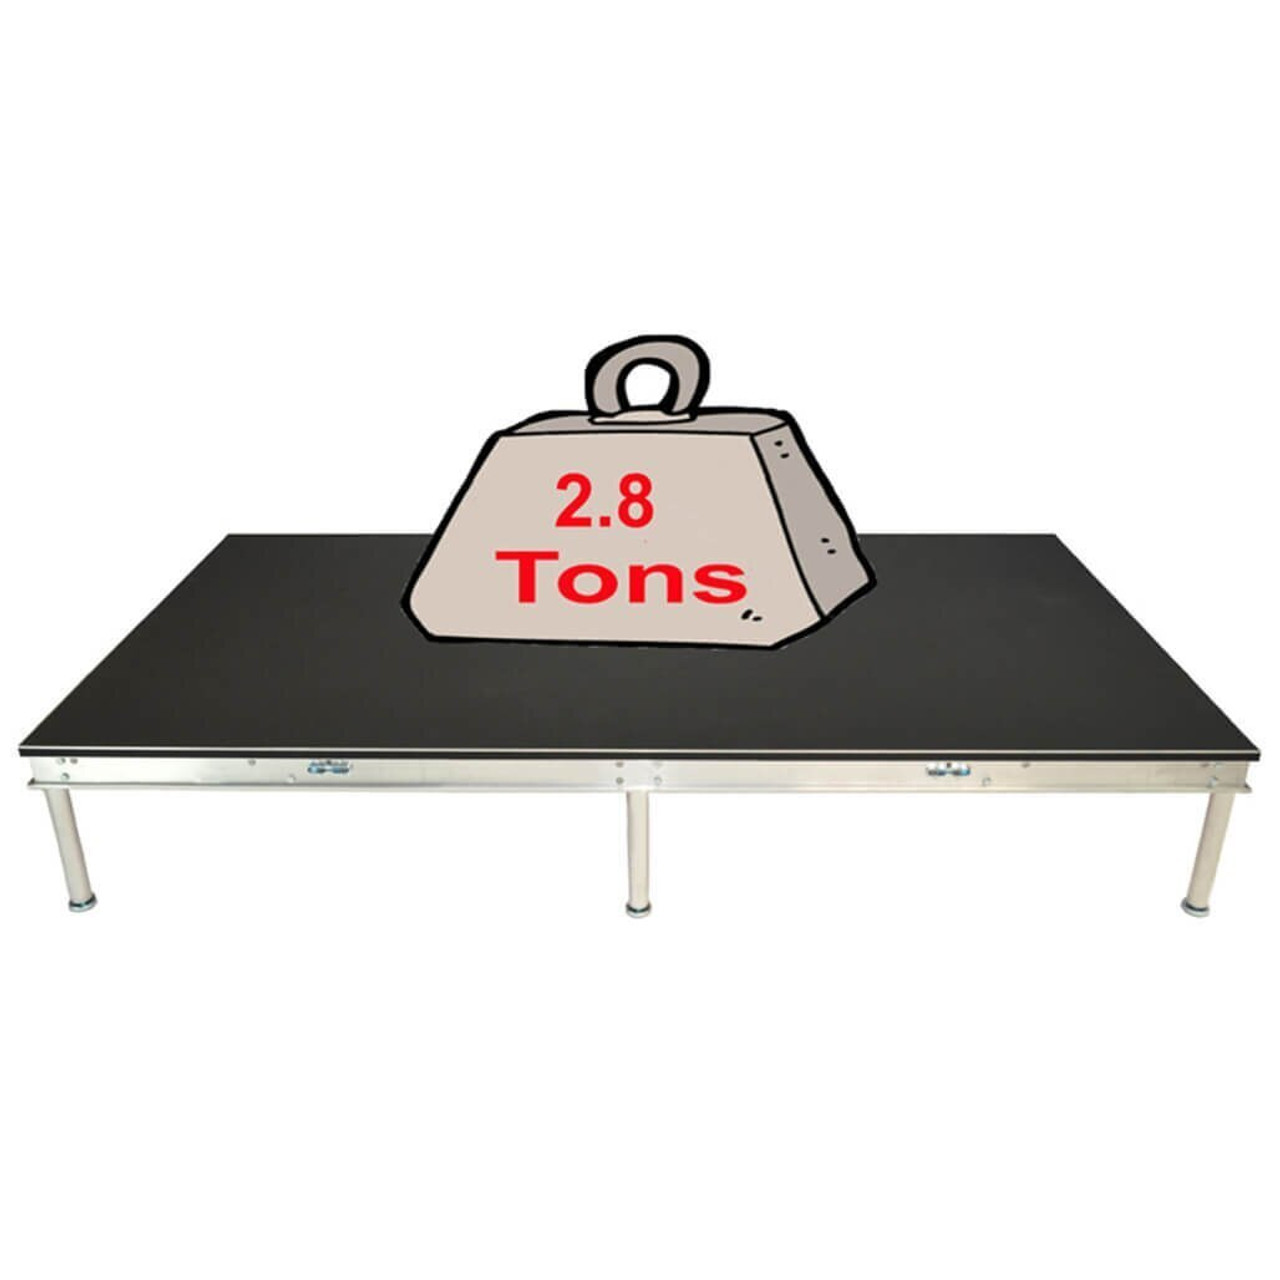 Top rated Quik Stage 4' x 20' High Portable Stage Package with Black Polyvinyl Non-Skid Surface. Additional Heights and Surfaces Available - Holds 2.8 tons per 4 x 8 or 1.4 tons per 4 x 4 when spread out evenly